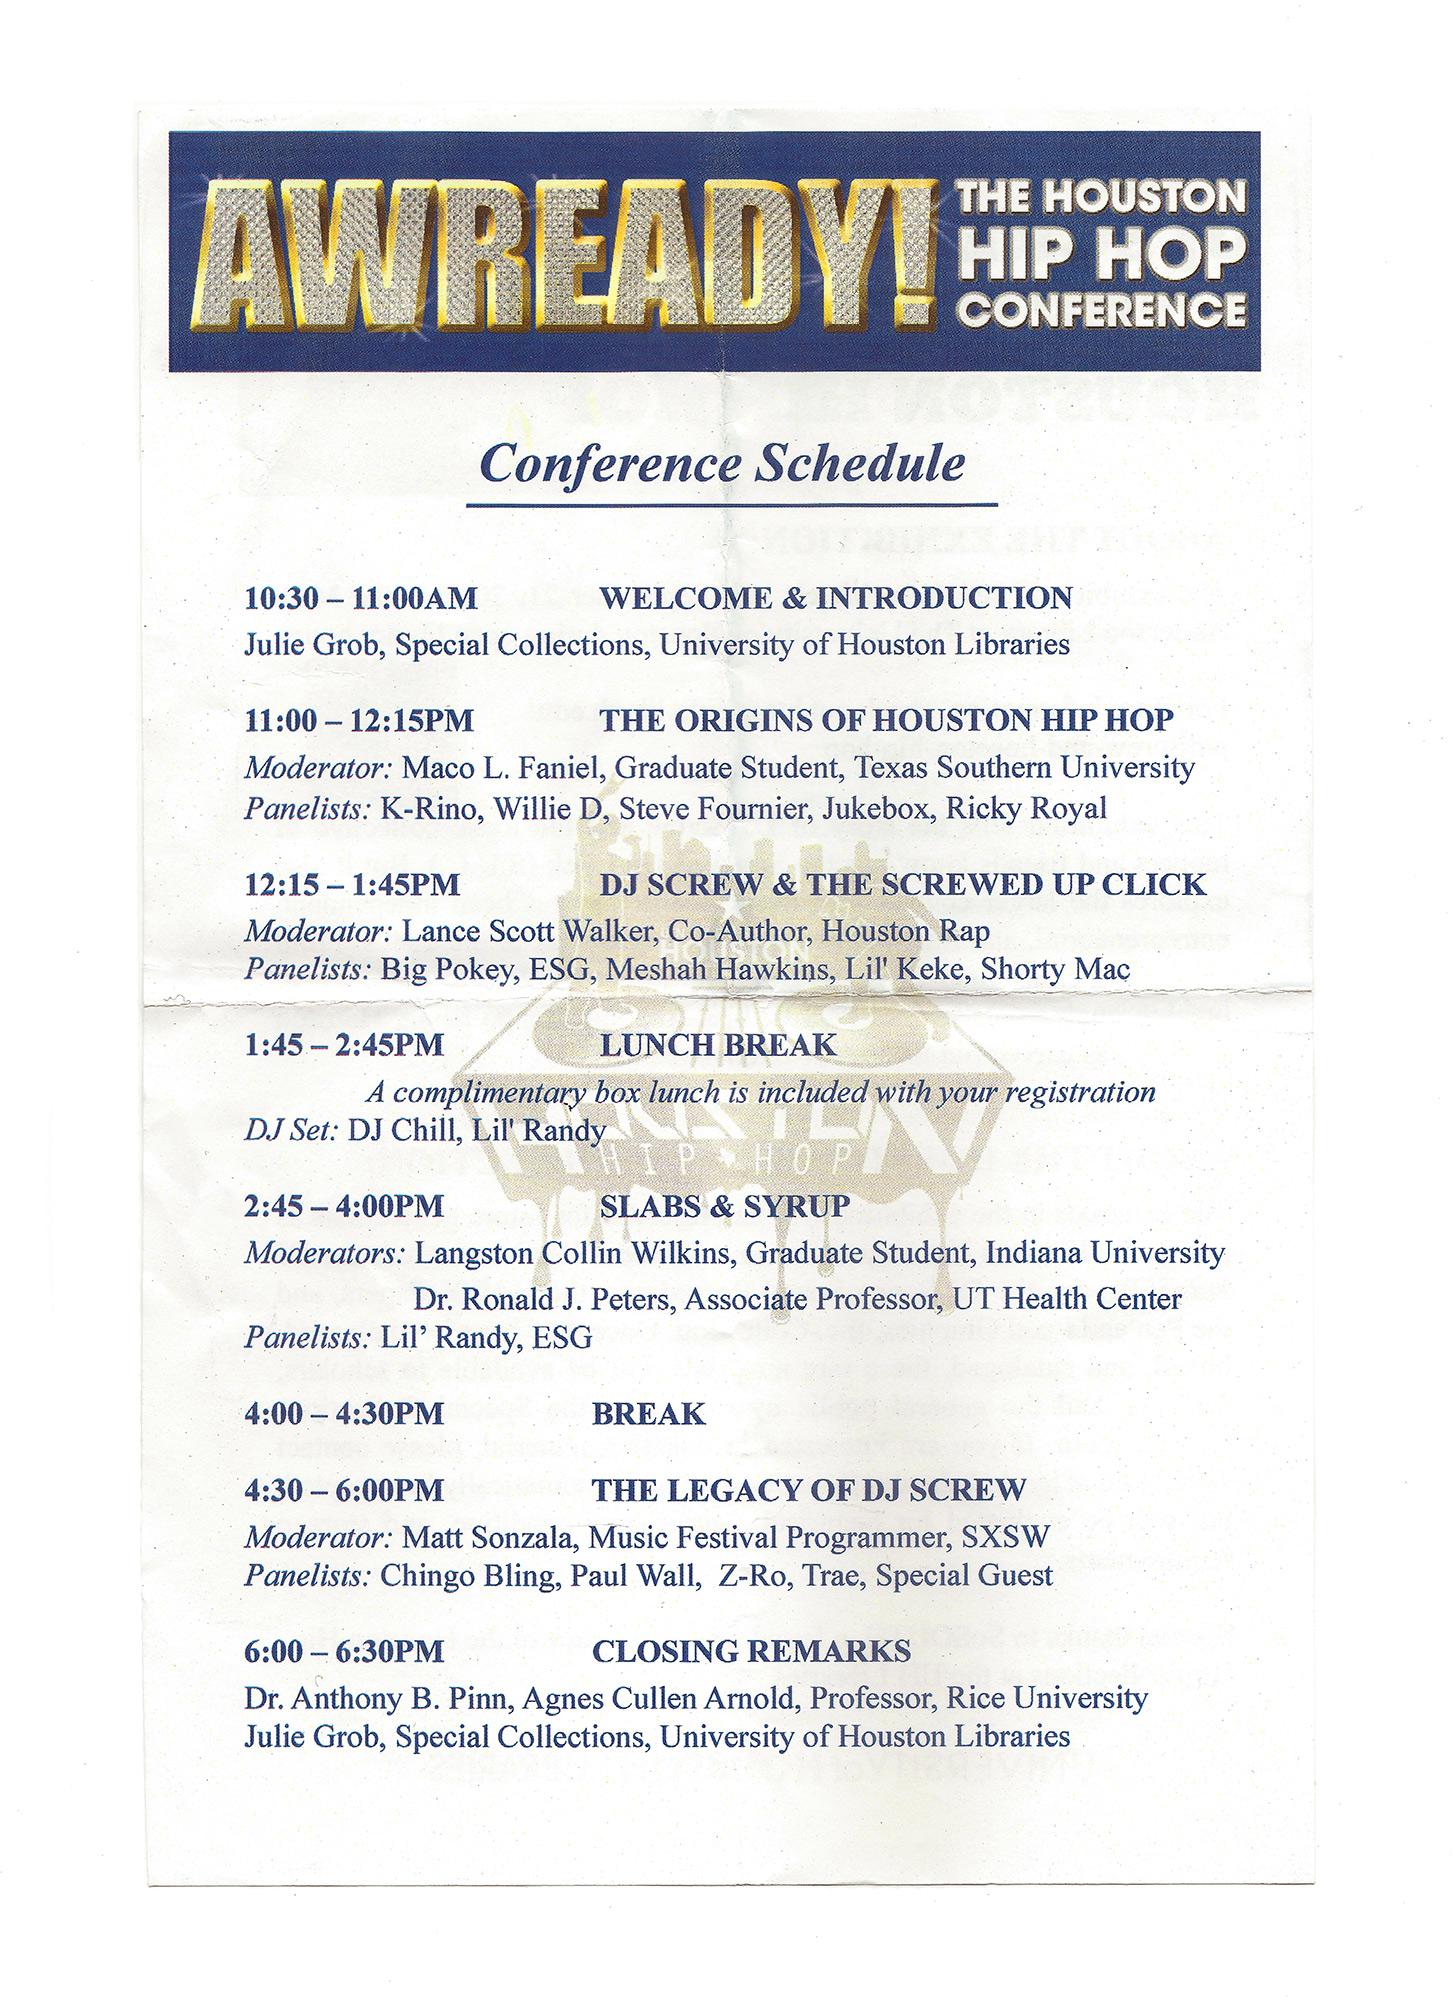 Paper conference schedule from the 2012 Awready! Houston Hip-Hop Conference held at the University of Houston in Houston, Texas, archived by Todd Spoth.